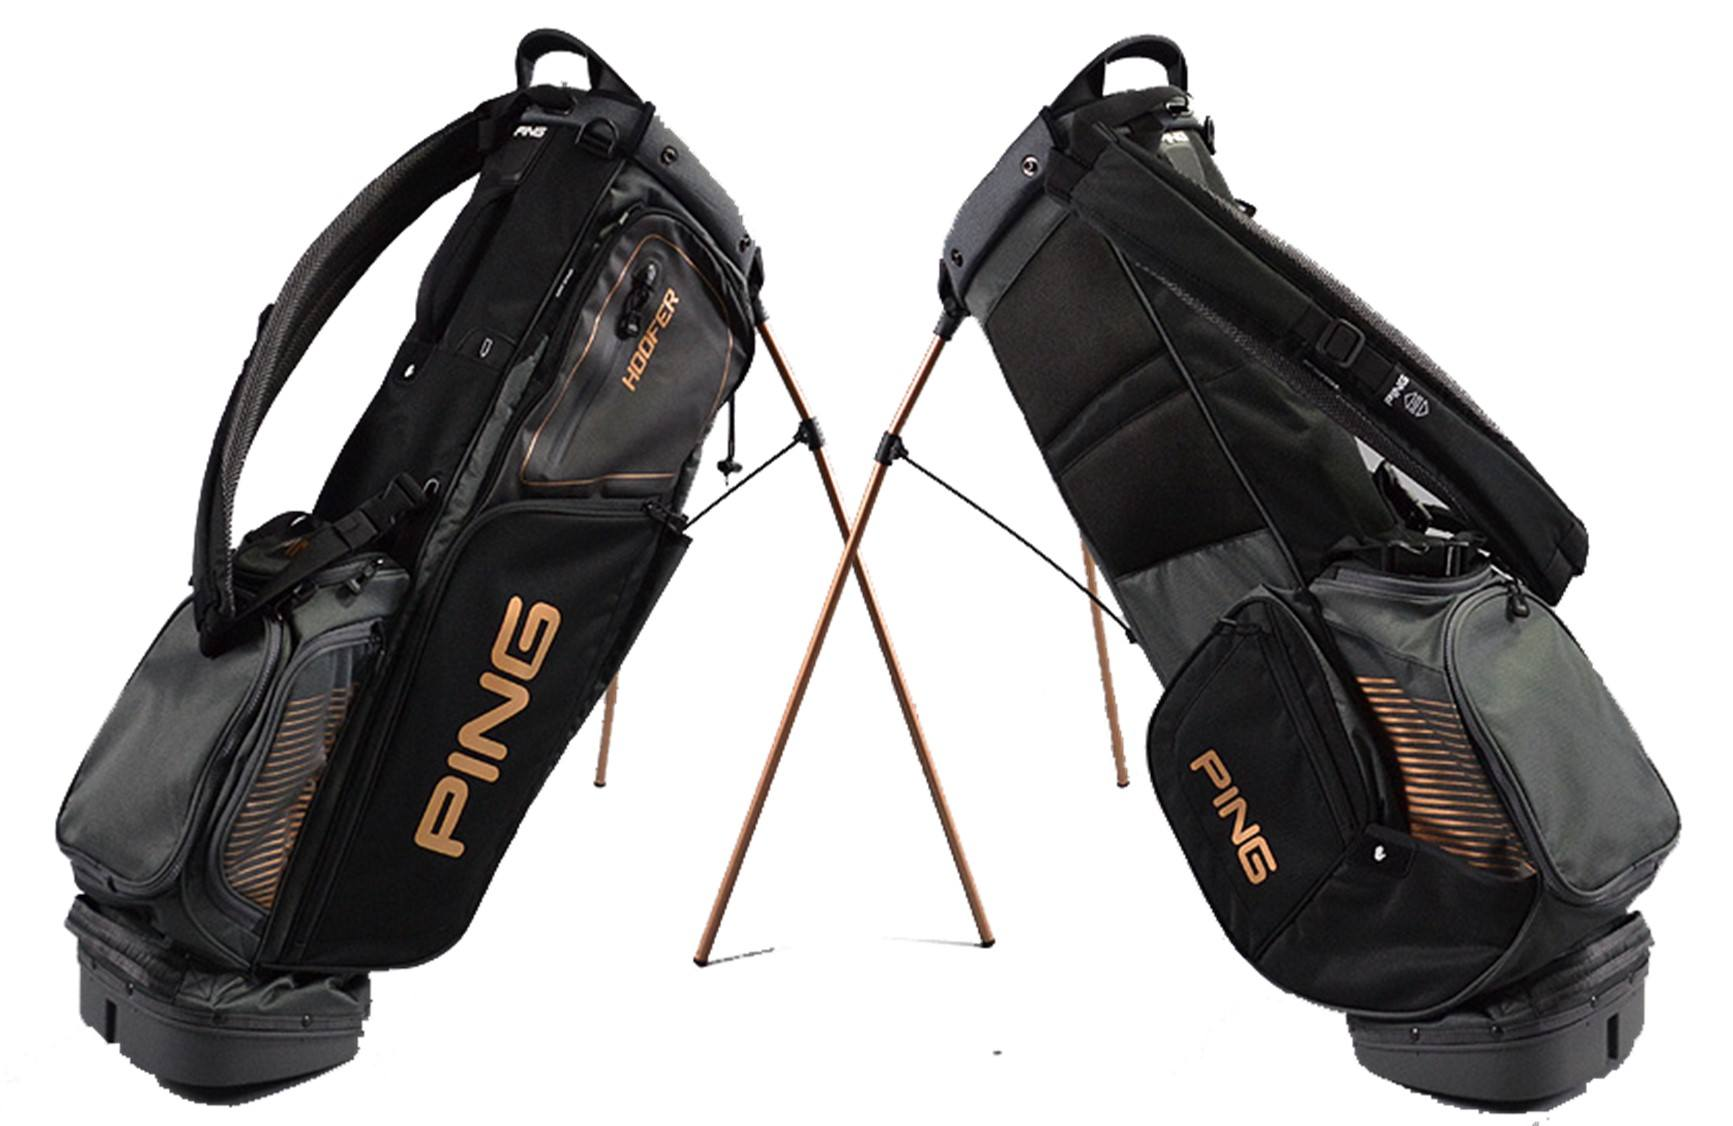 Best Golf Bags Of 2020 The Ultimate